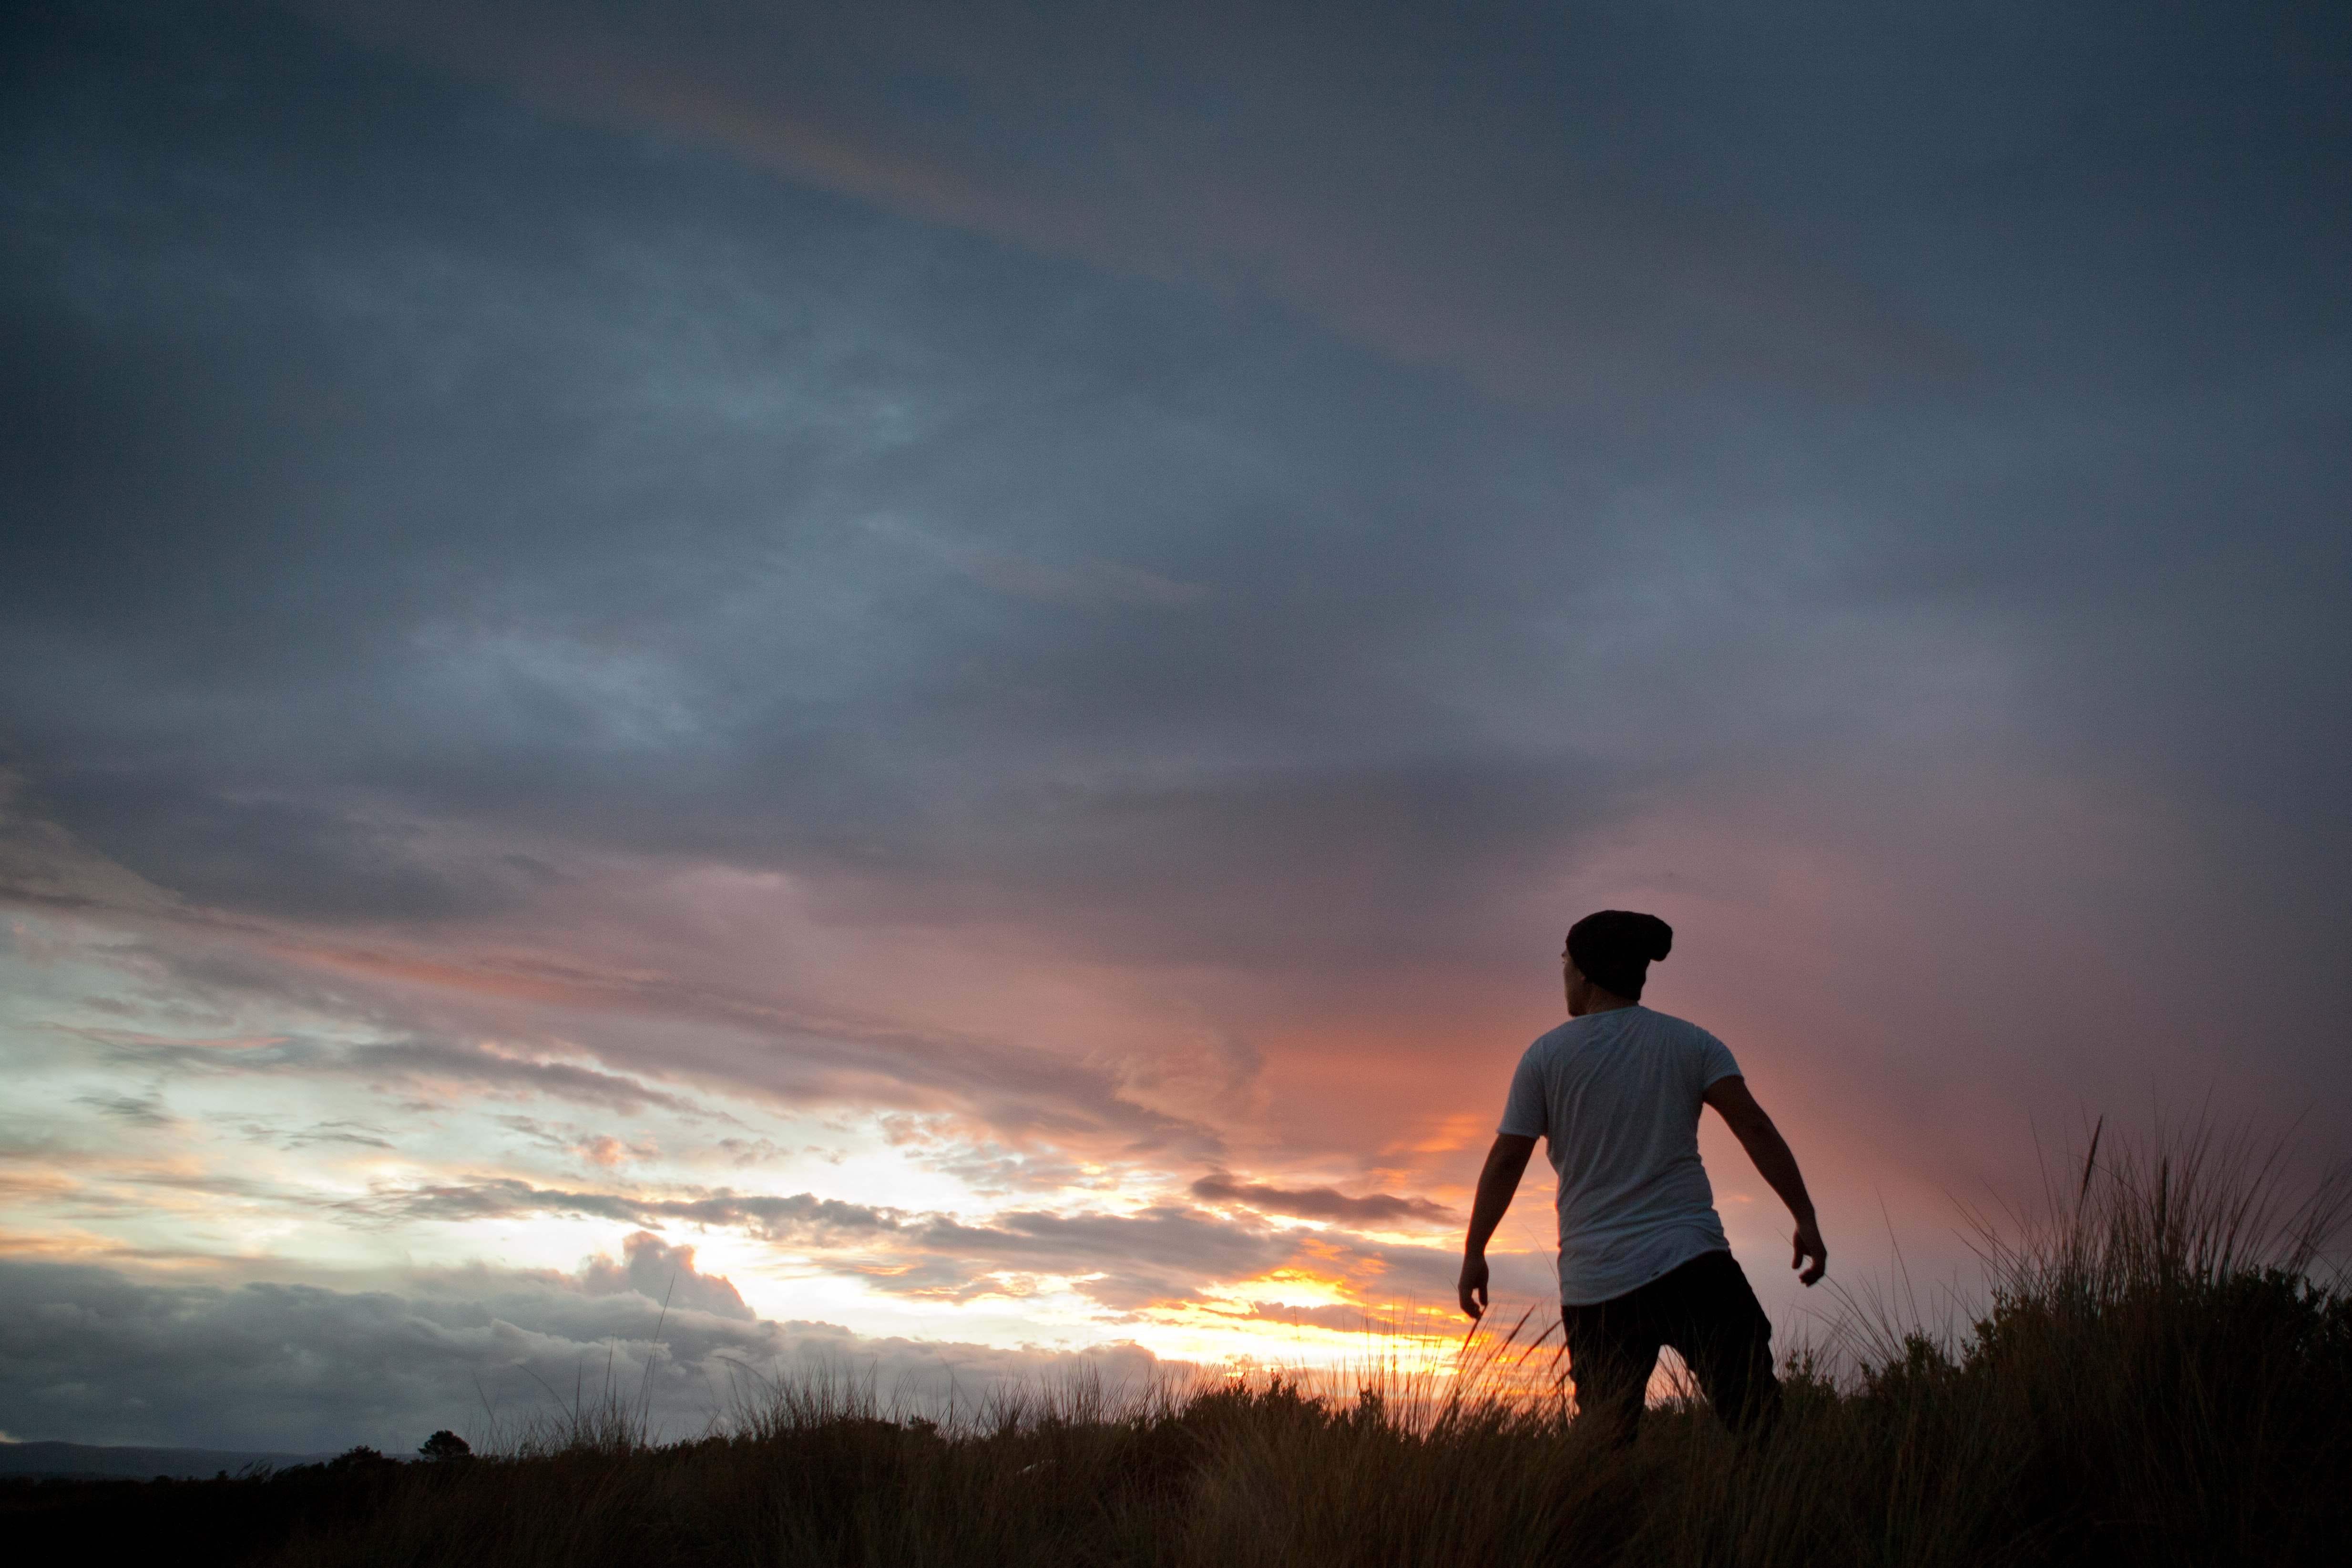 Man standing in a field, against an orange and light blue sunrise with grey clouds.